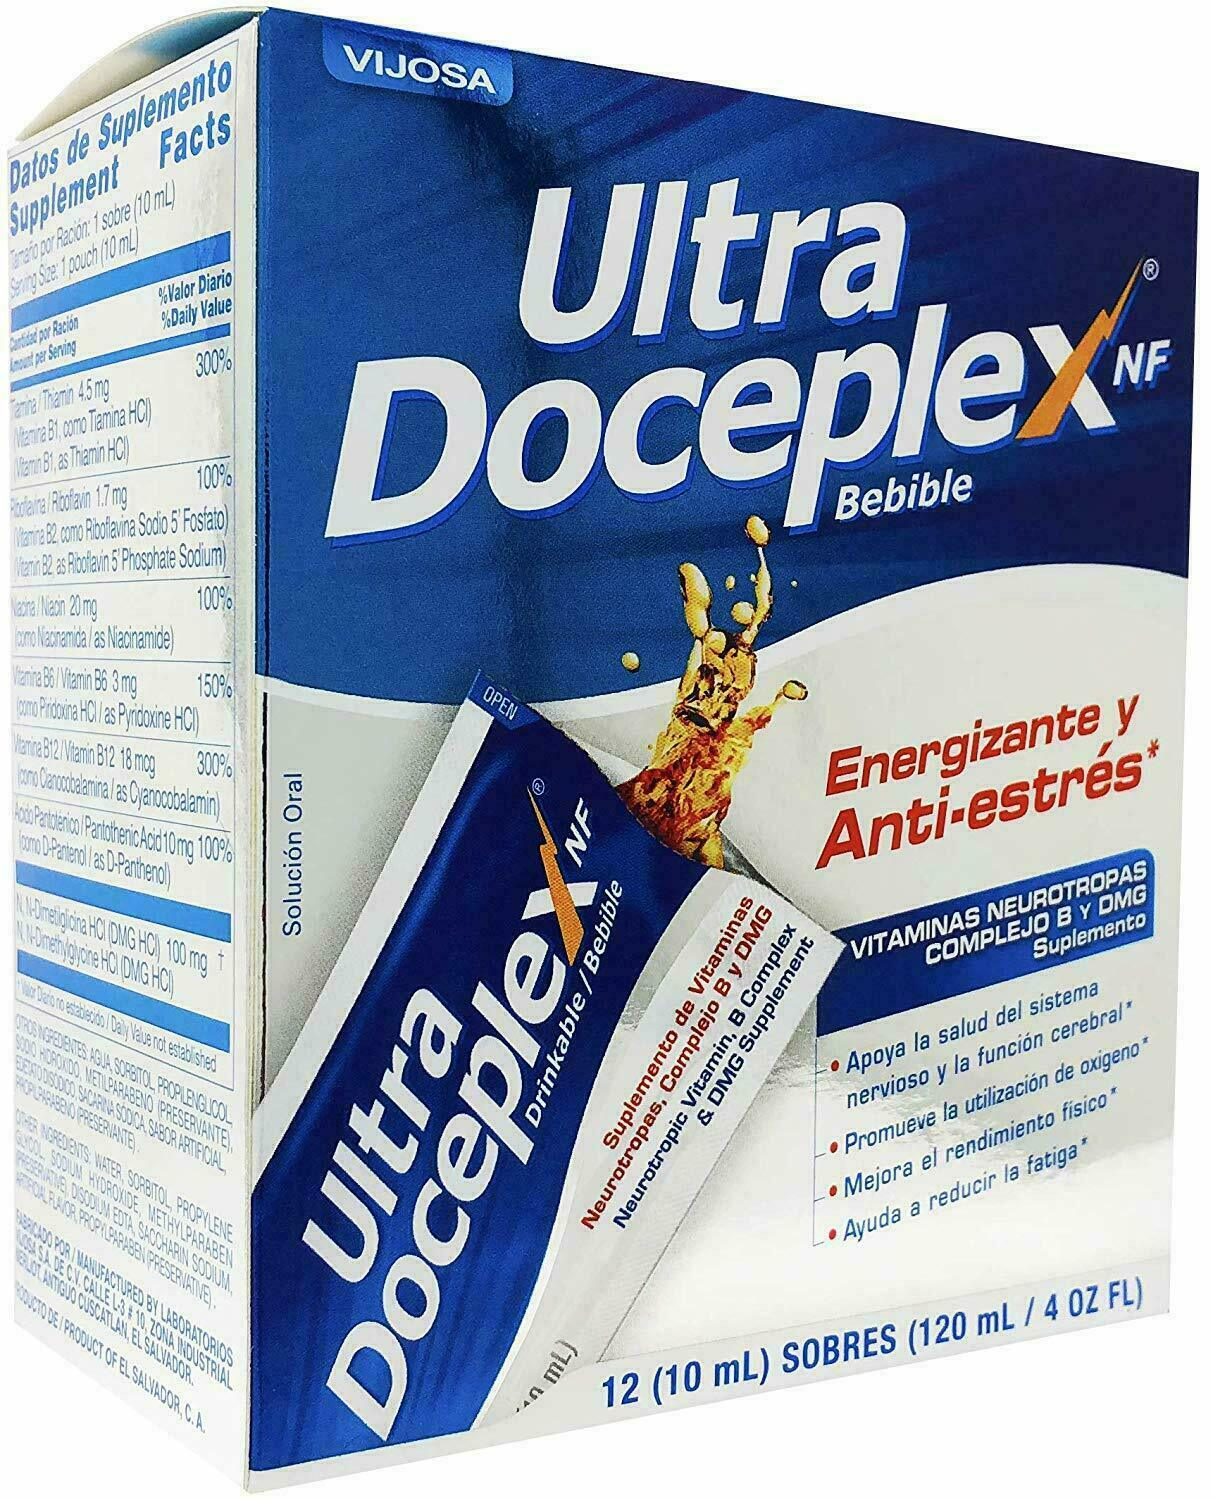 2 Boxes ULTRA DOCEPLEX NF 24 Bags Support ANTIESTRES ENERGY BOOSTER ANTI-STRESS 1